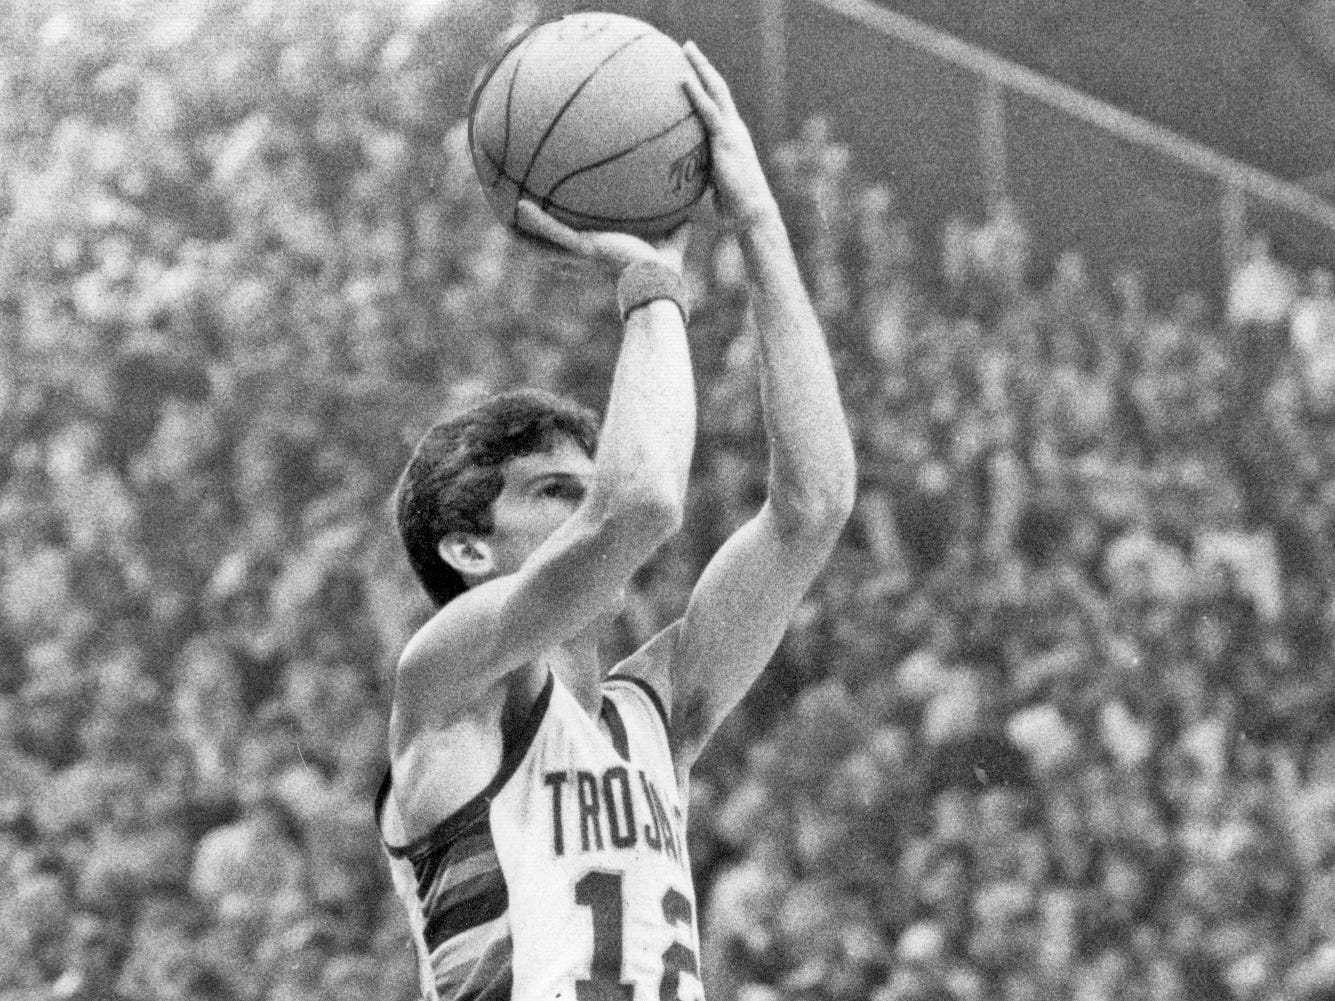 Dennis Bland of Broad Ripple watches New Castle's Steve Alford shoot in their March 19, 1983 semistate matchup at Hinkle Fieldhouse. Alford piled up 57 points and broke seven scoring recods in leading his team to a a 79-64 win over Broad Ripple. Alford hit 16 or 27 field goals and 25 consecutive free throws in the matchup. New Castle lost the semistate championship game to to the eventual state champs Connersville that evening 70-57, despite Alford's 37 points.